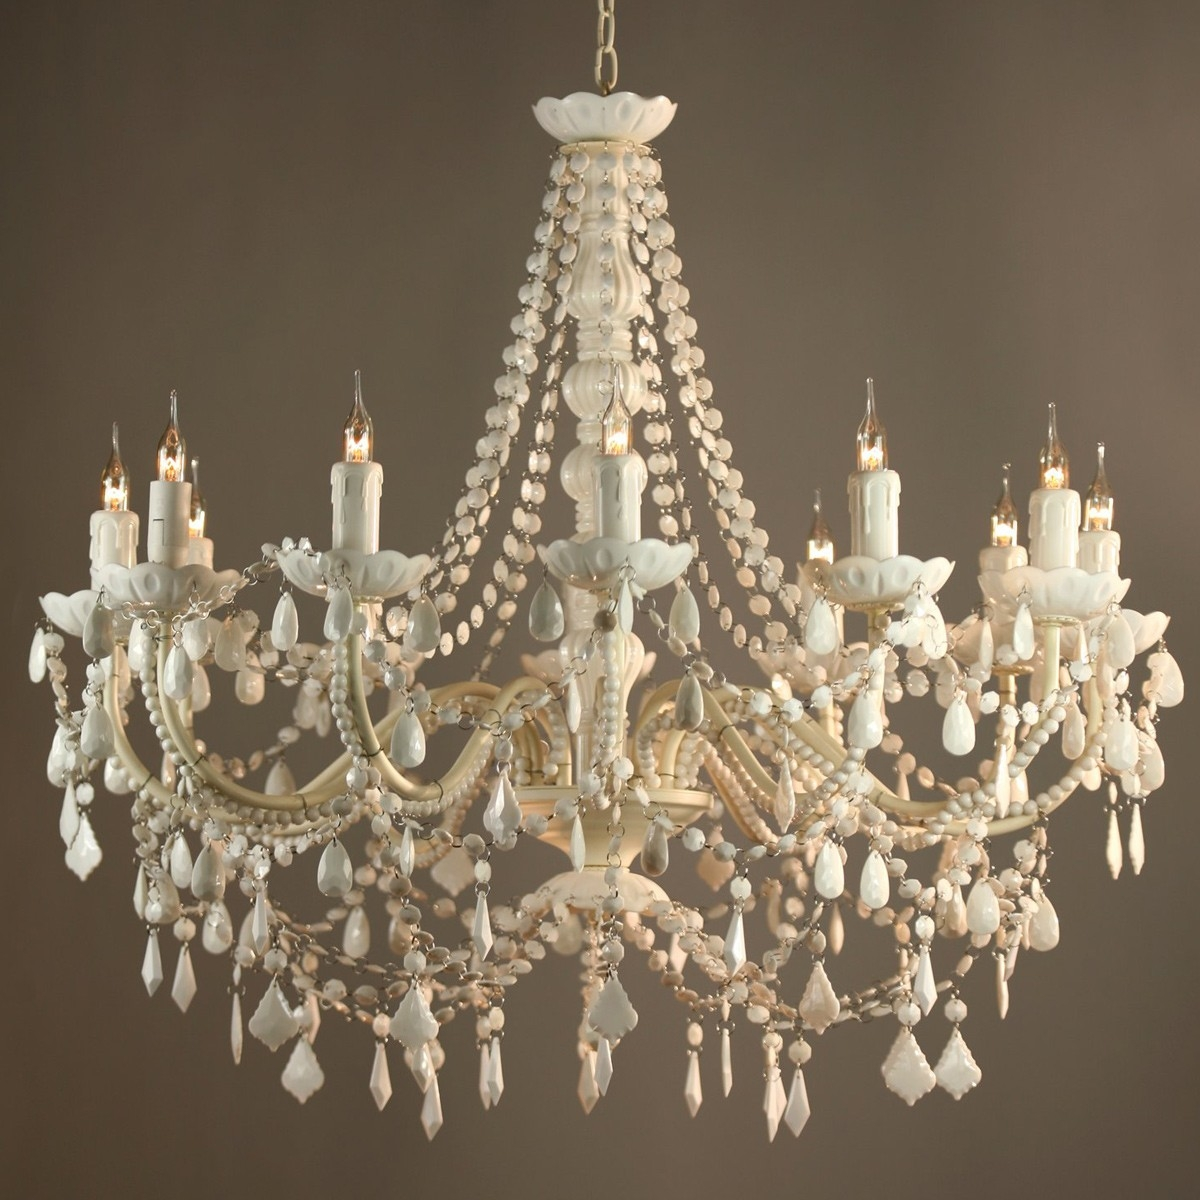 Great Vintage Chandeliers 27 In Home Design Styles Interior Ideas Intended For Antique Style Chandeliers (Image 7 of 15)